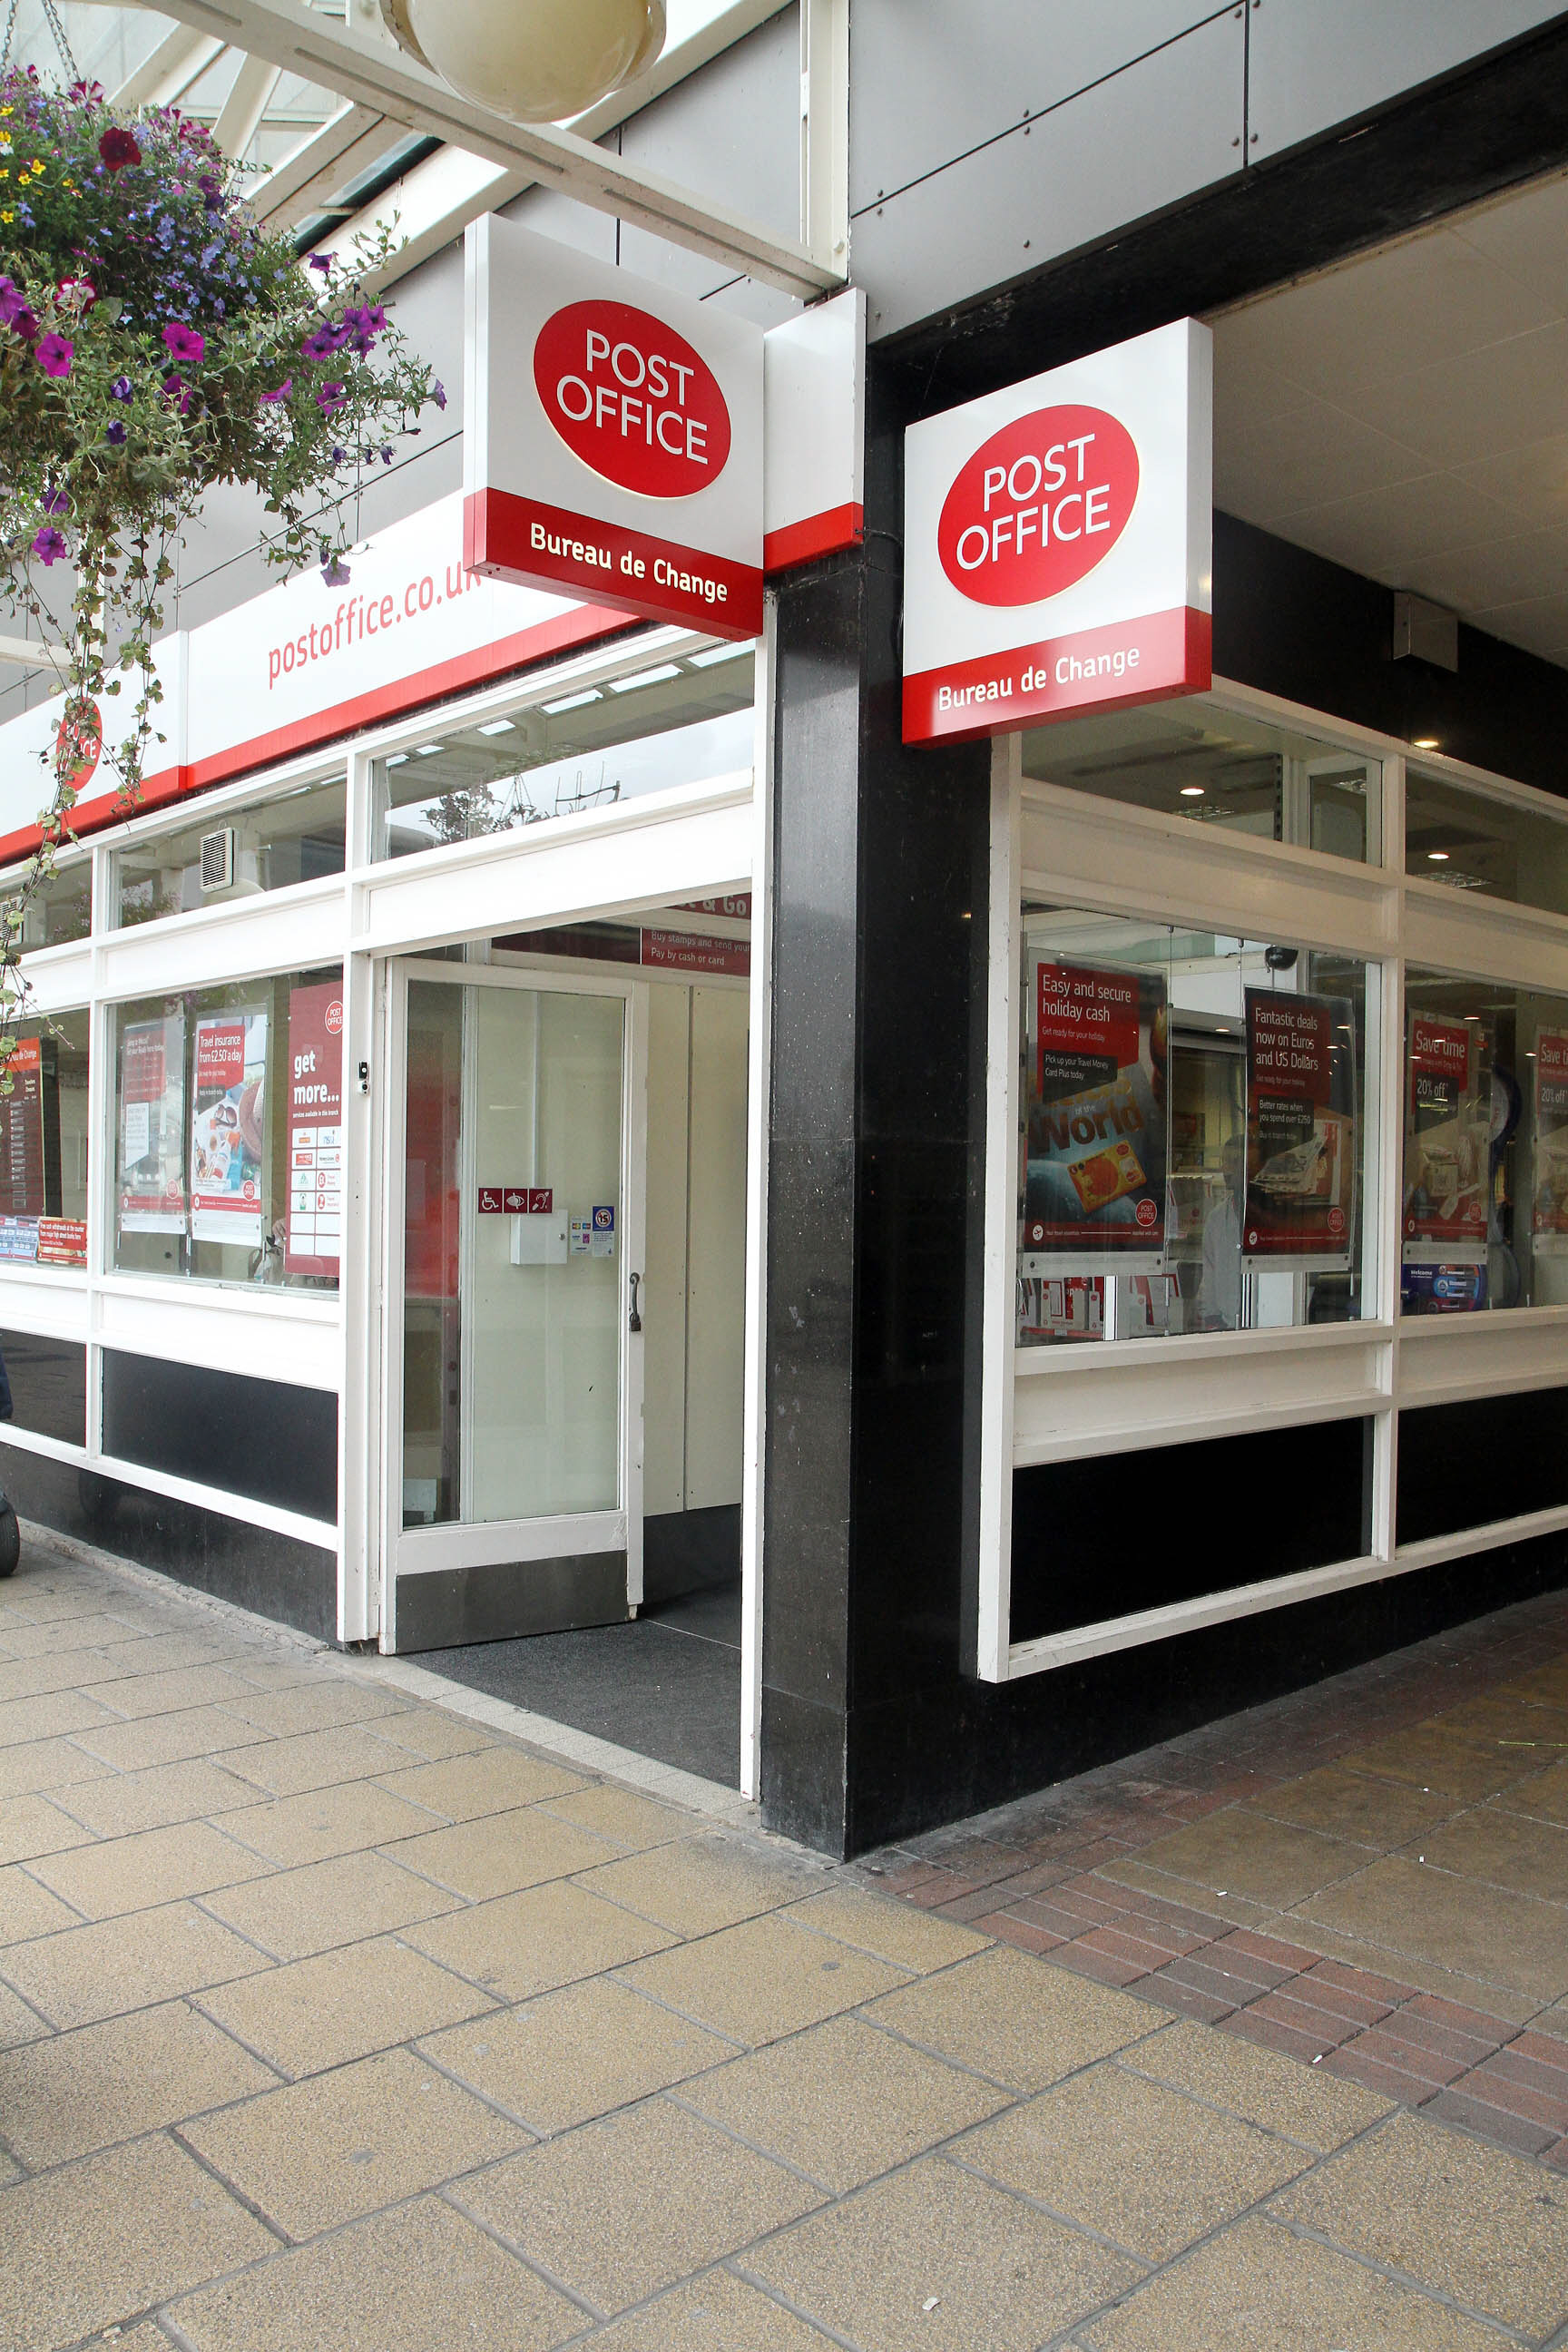 Keighley Post Office